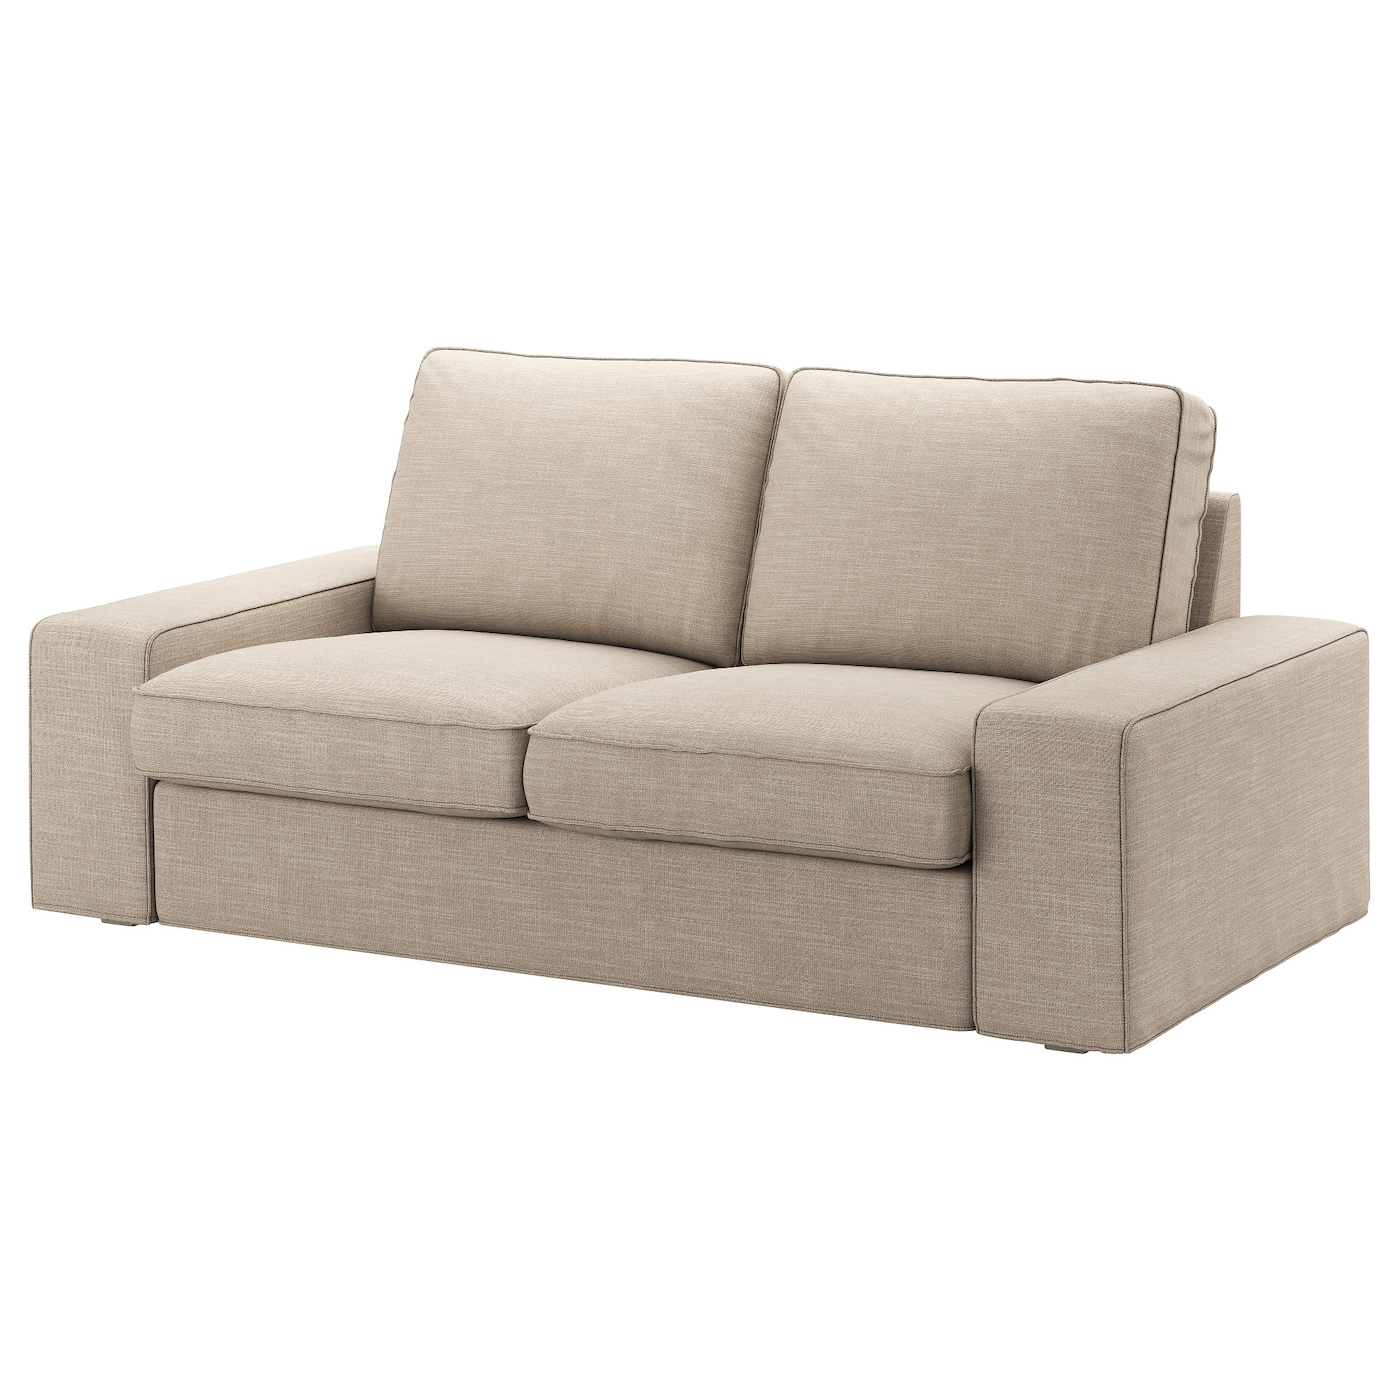 Kivik two seat sofa hillared beige ikea for Kivik chaise ikea